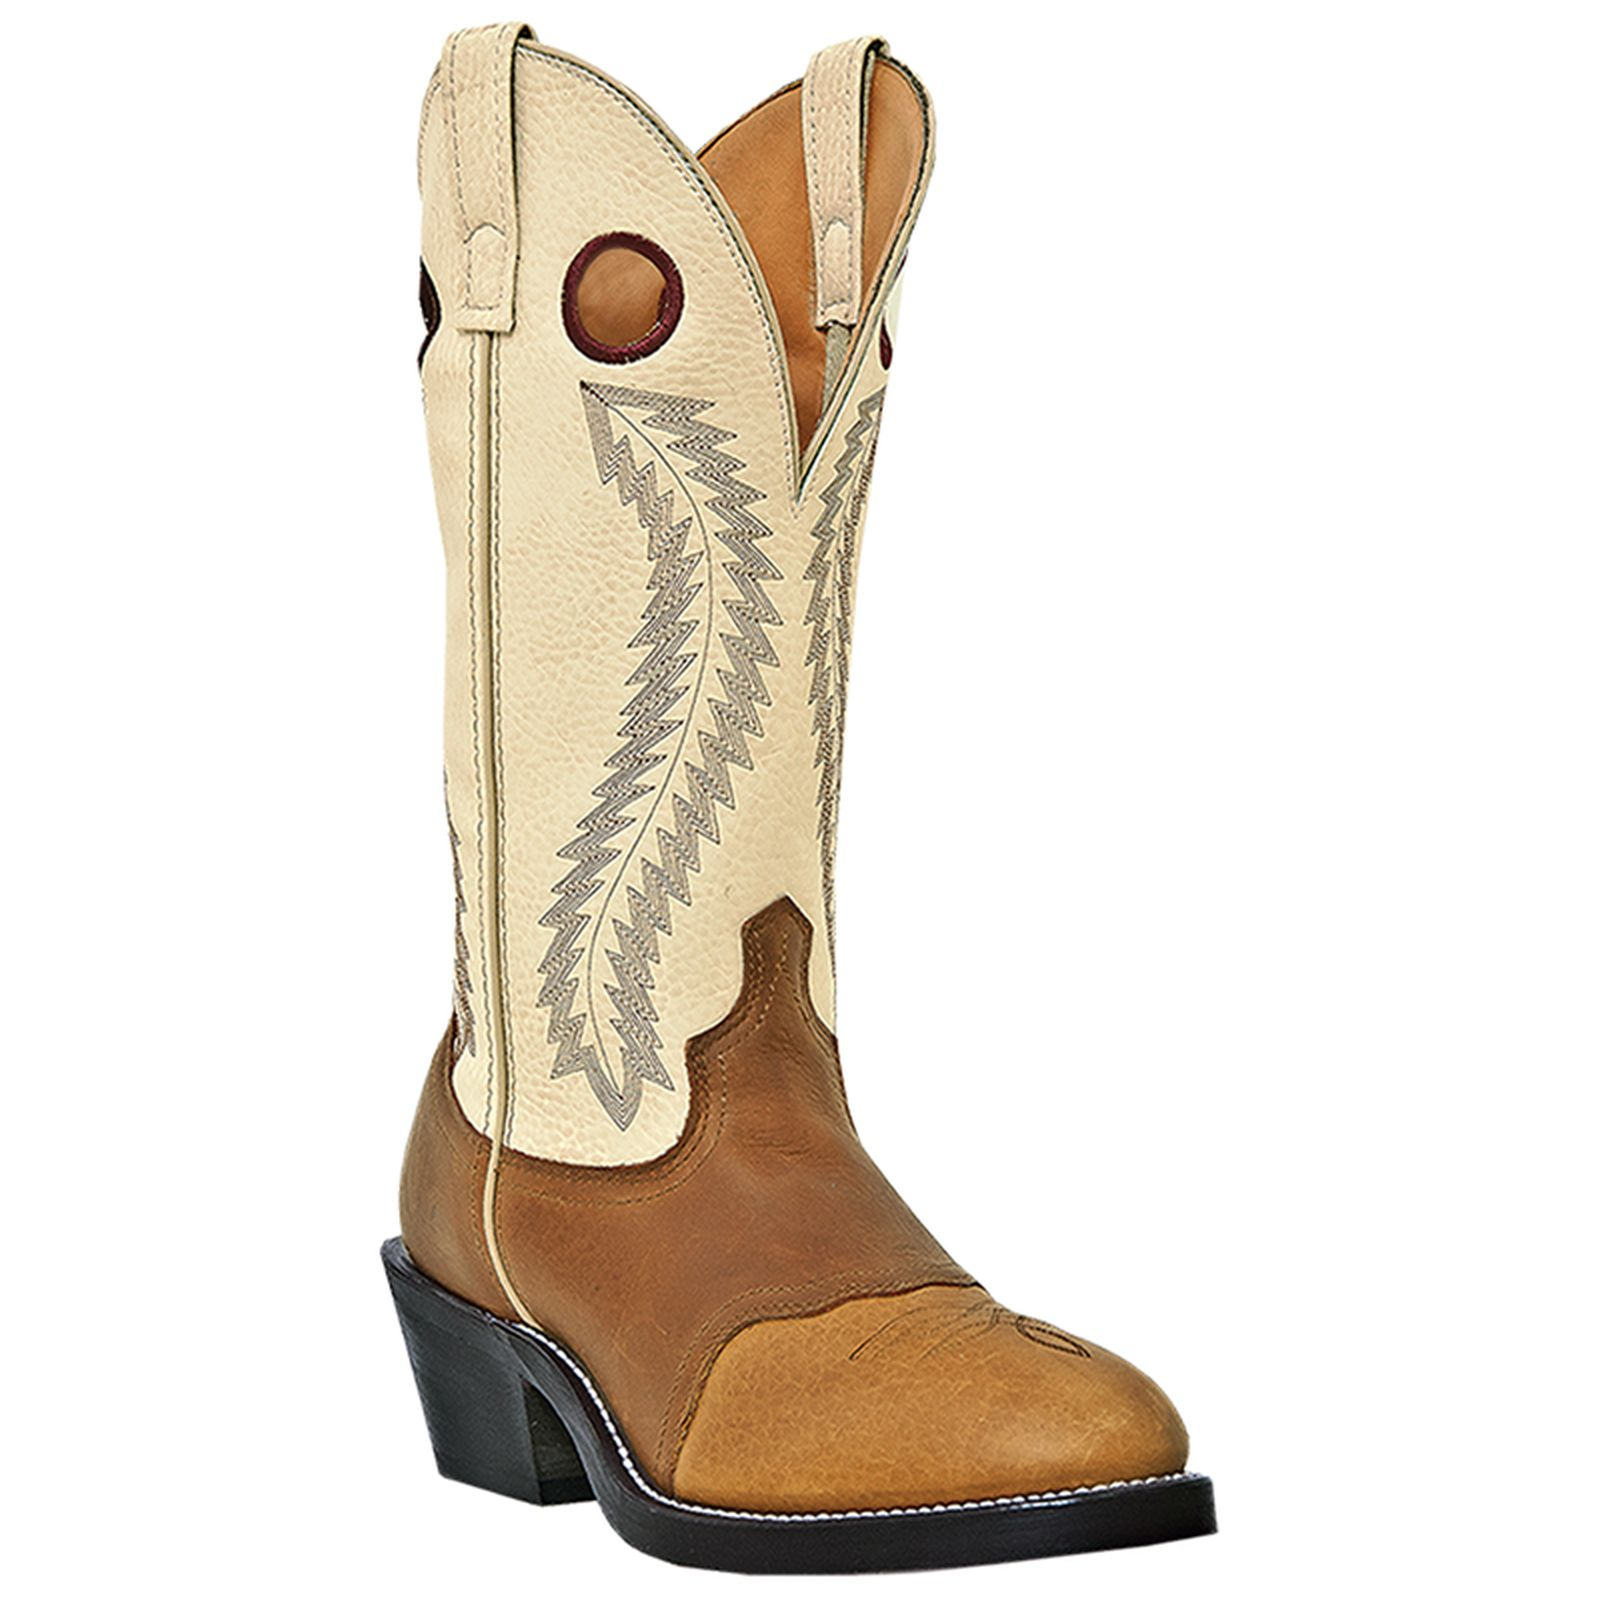 Laredo 62023 Men's Tan and Brown Knoxville Western Boots by Laredo